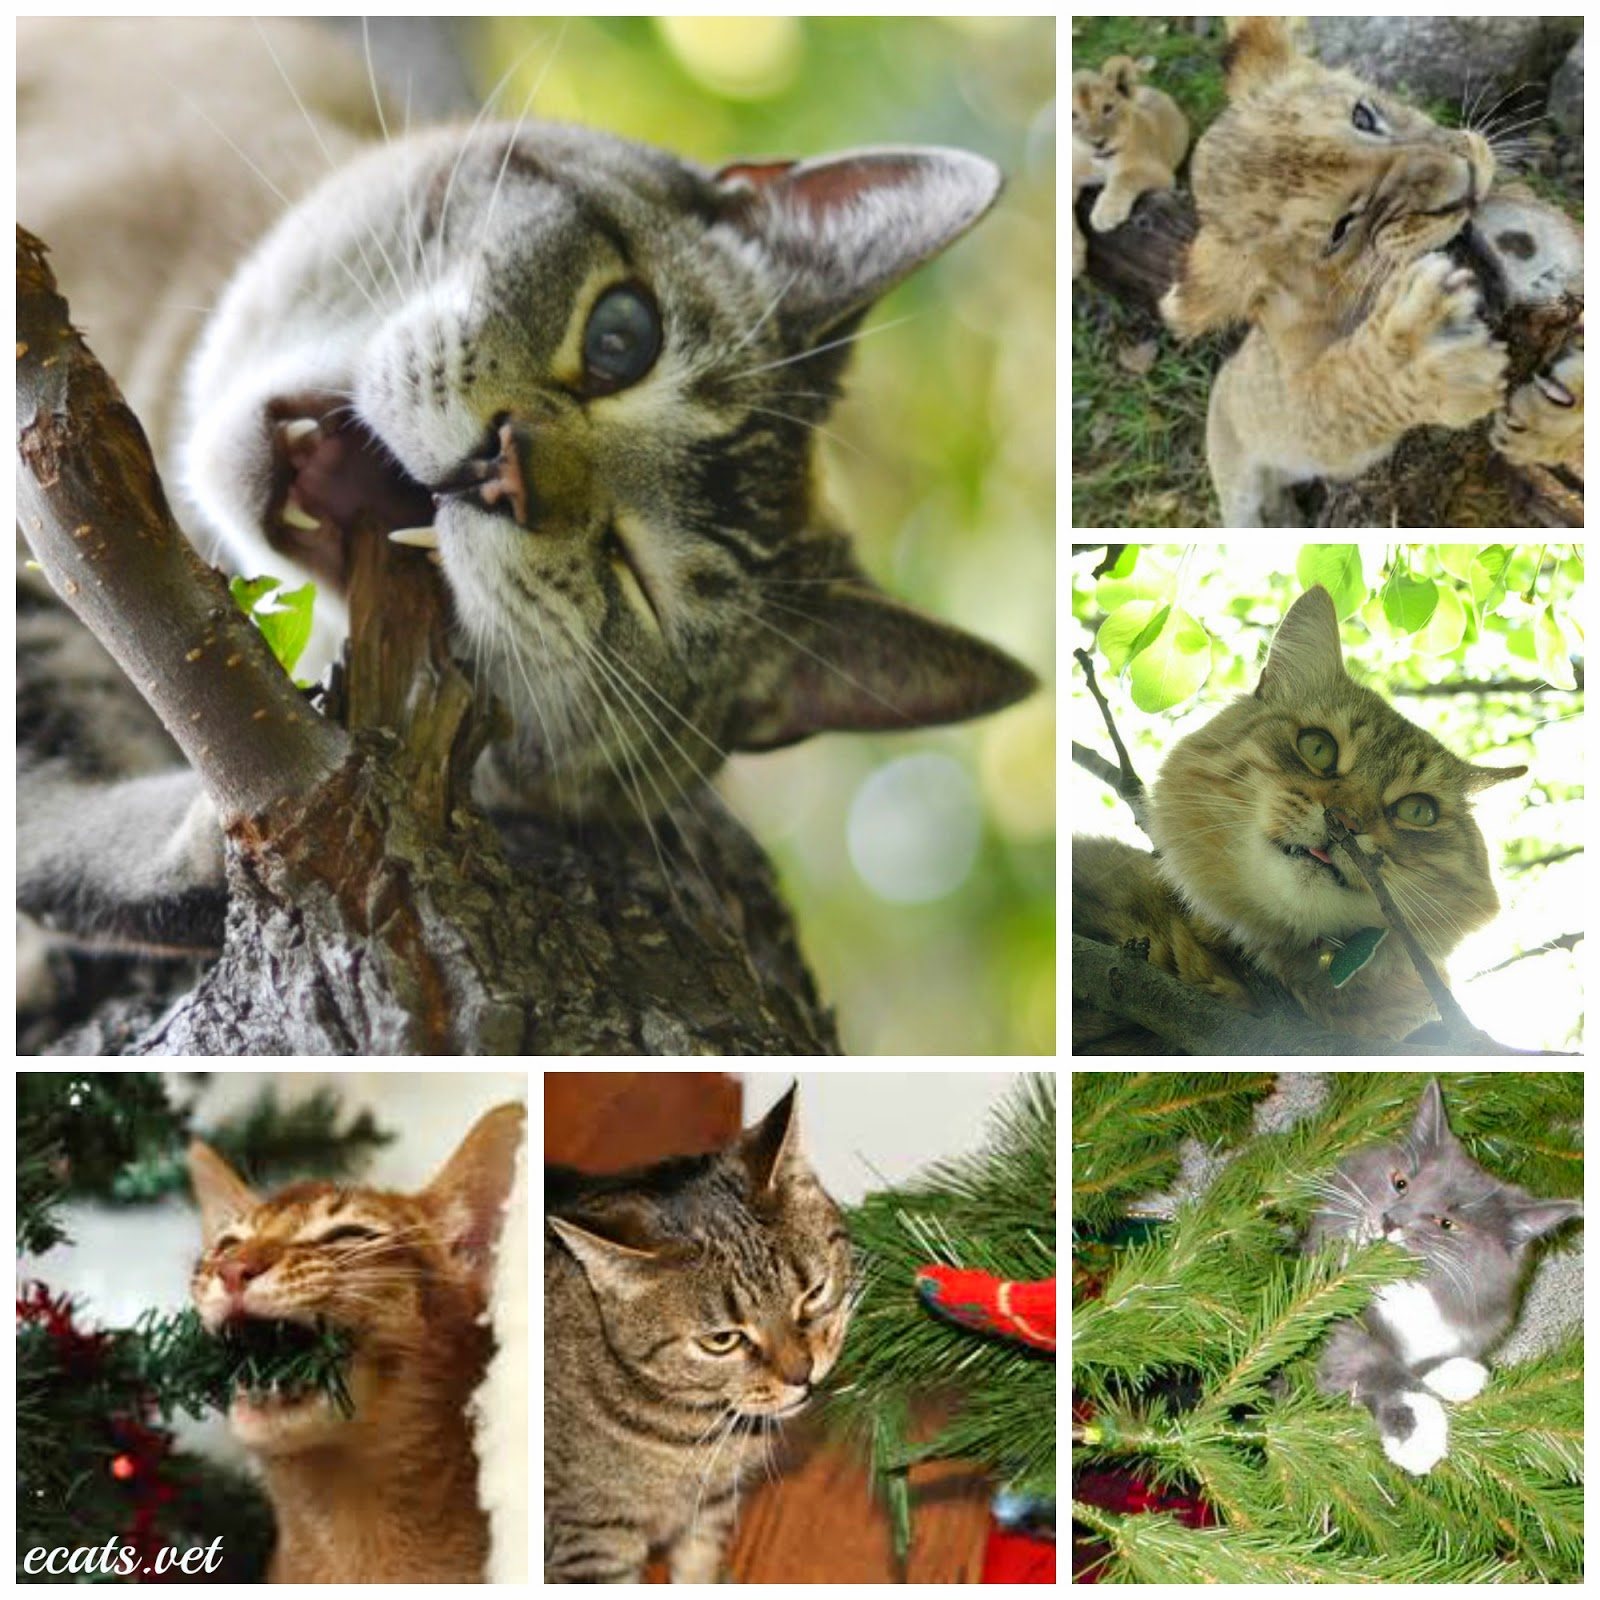 Are Christmas Trees Bad For Cats: Exclusively Cats Veterinary Hospital Blog: How Do I Keep